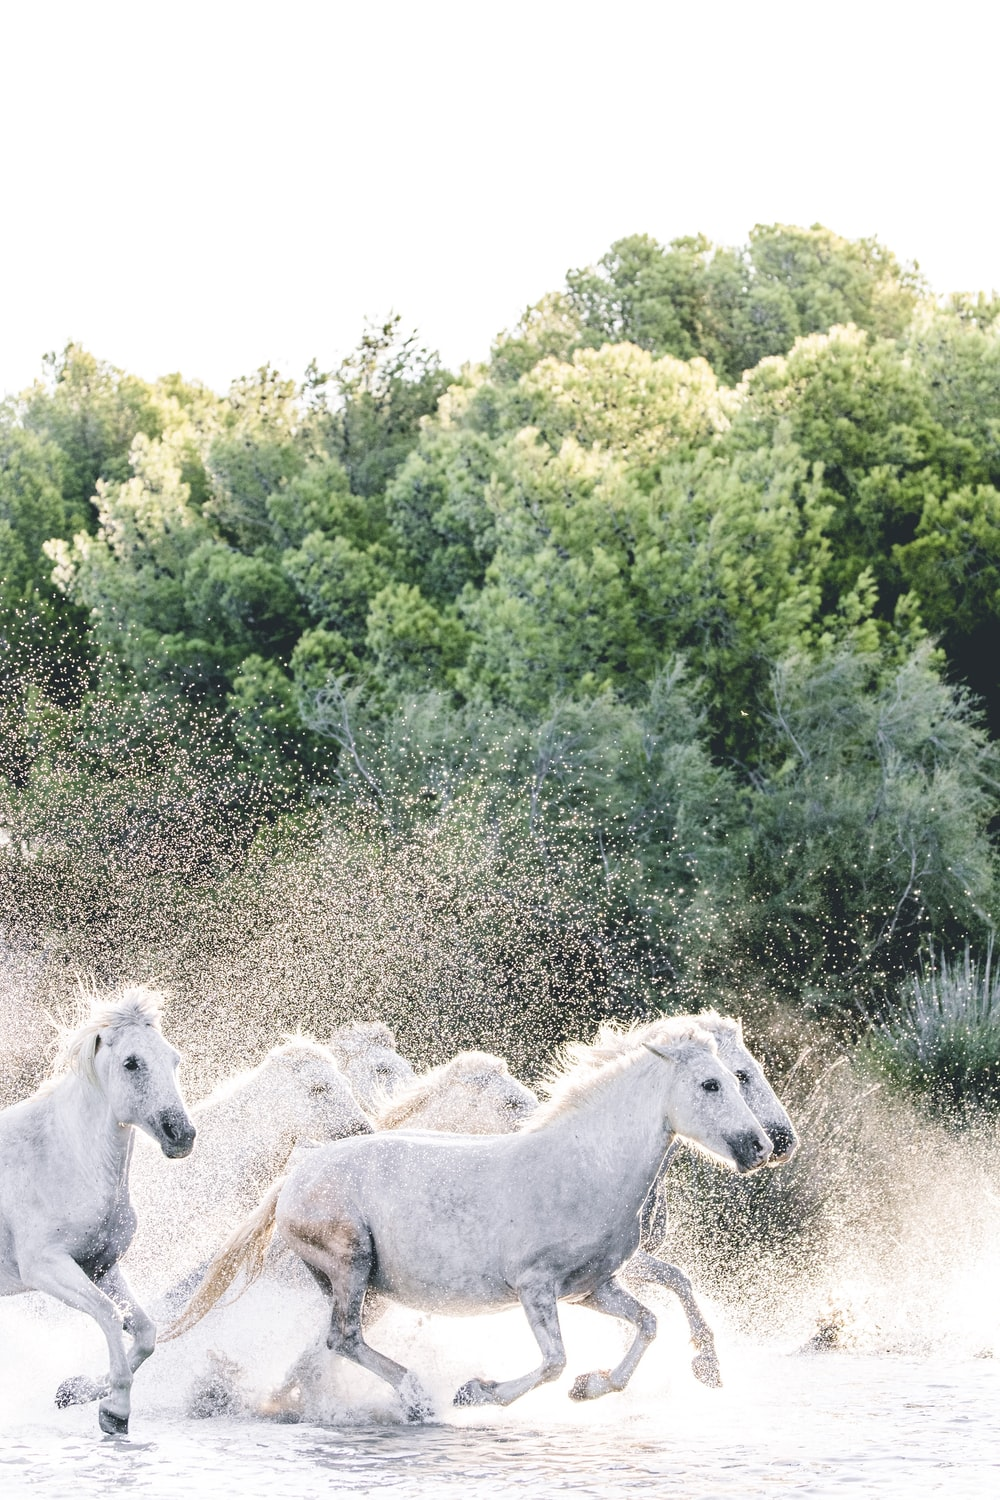 white horses on green grass field during daytime